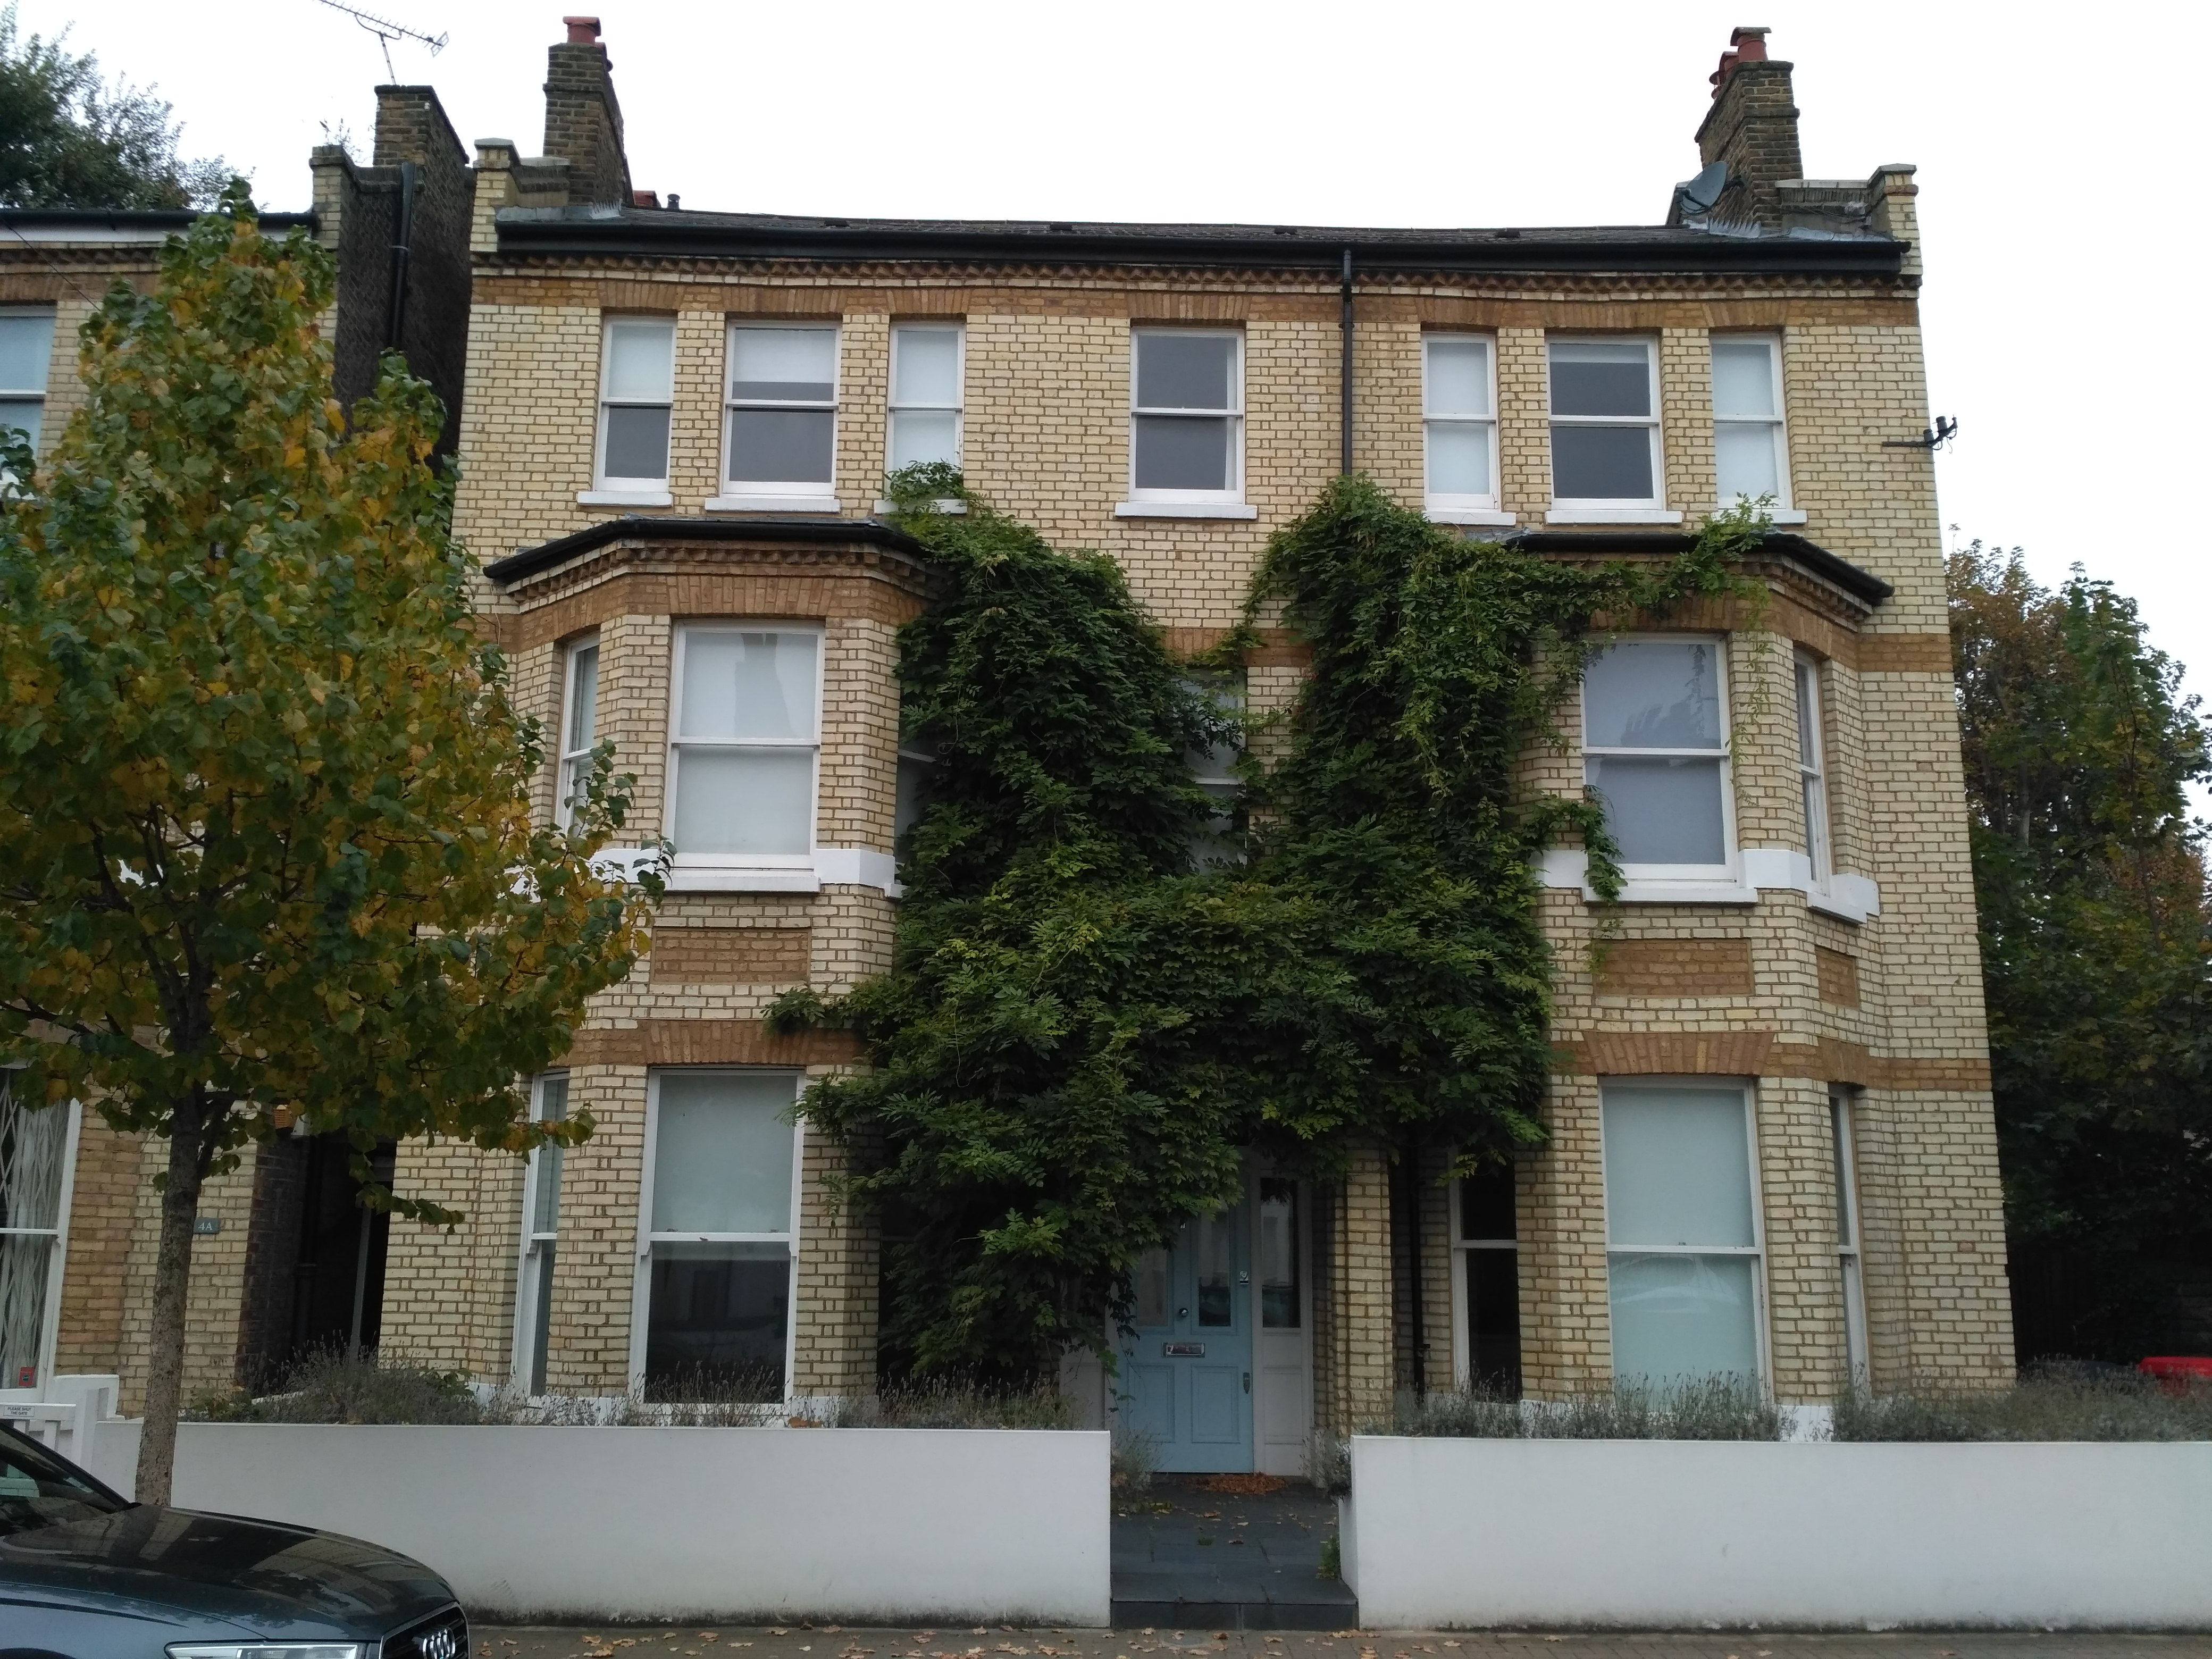 2 Alderbrook Road, Clapham South, London SW12 8AG